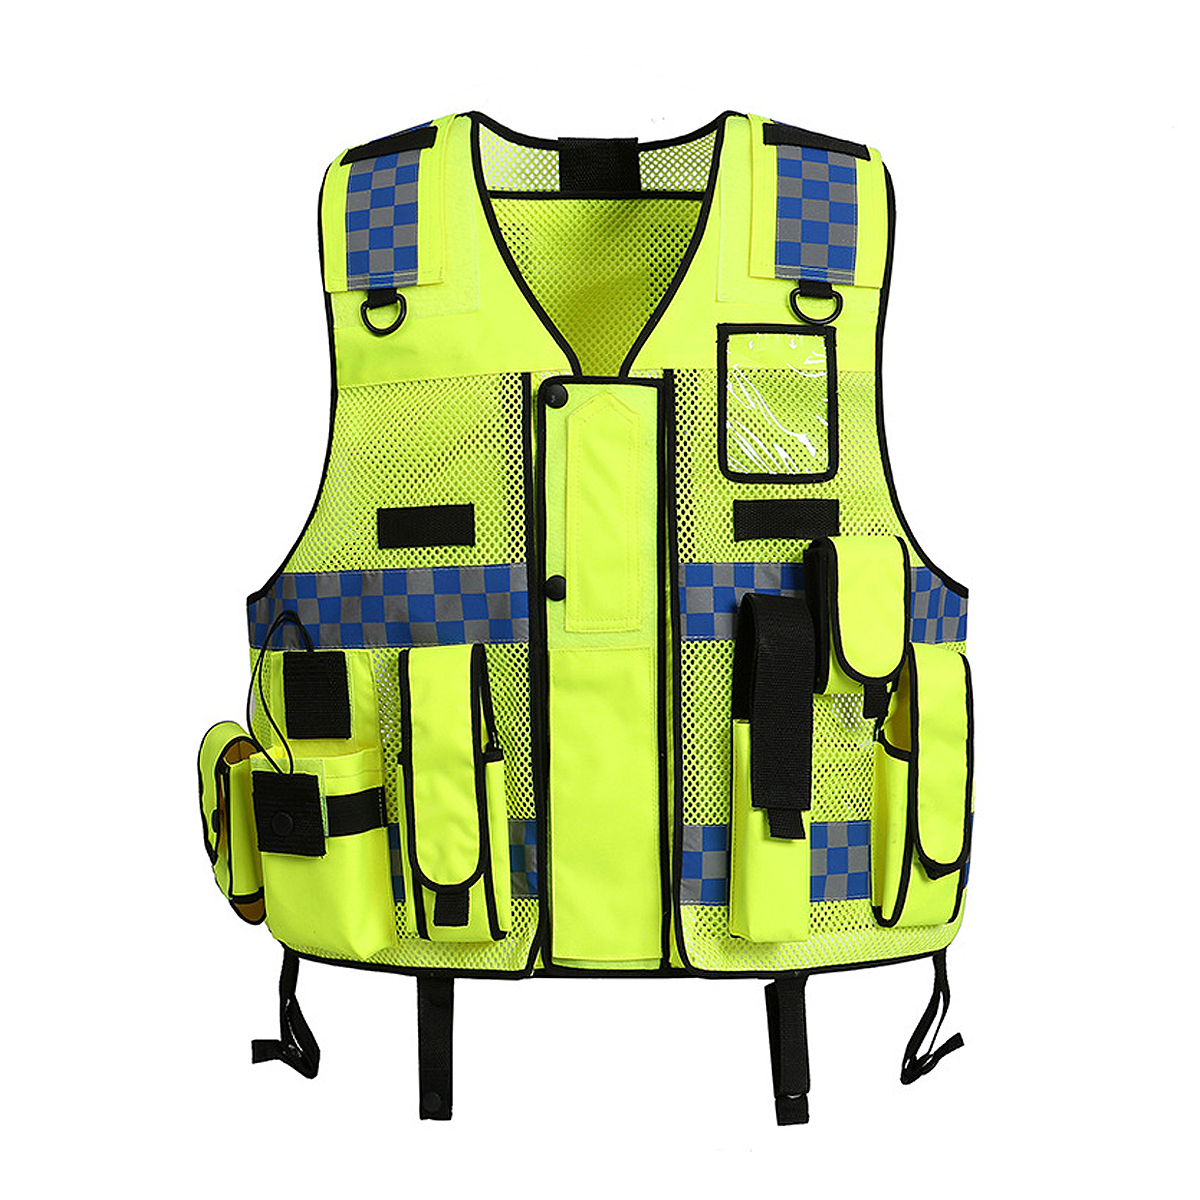 NEW Tactic Security Patrol Vest Hi Viz Yellow Industry Door Staff Workwear Safety Clothing